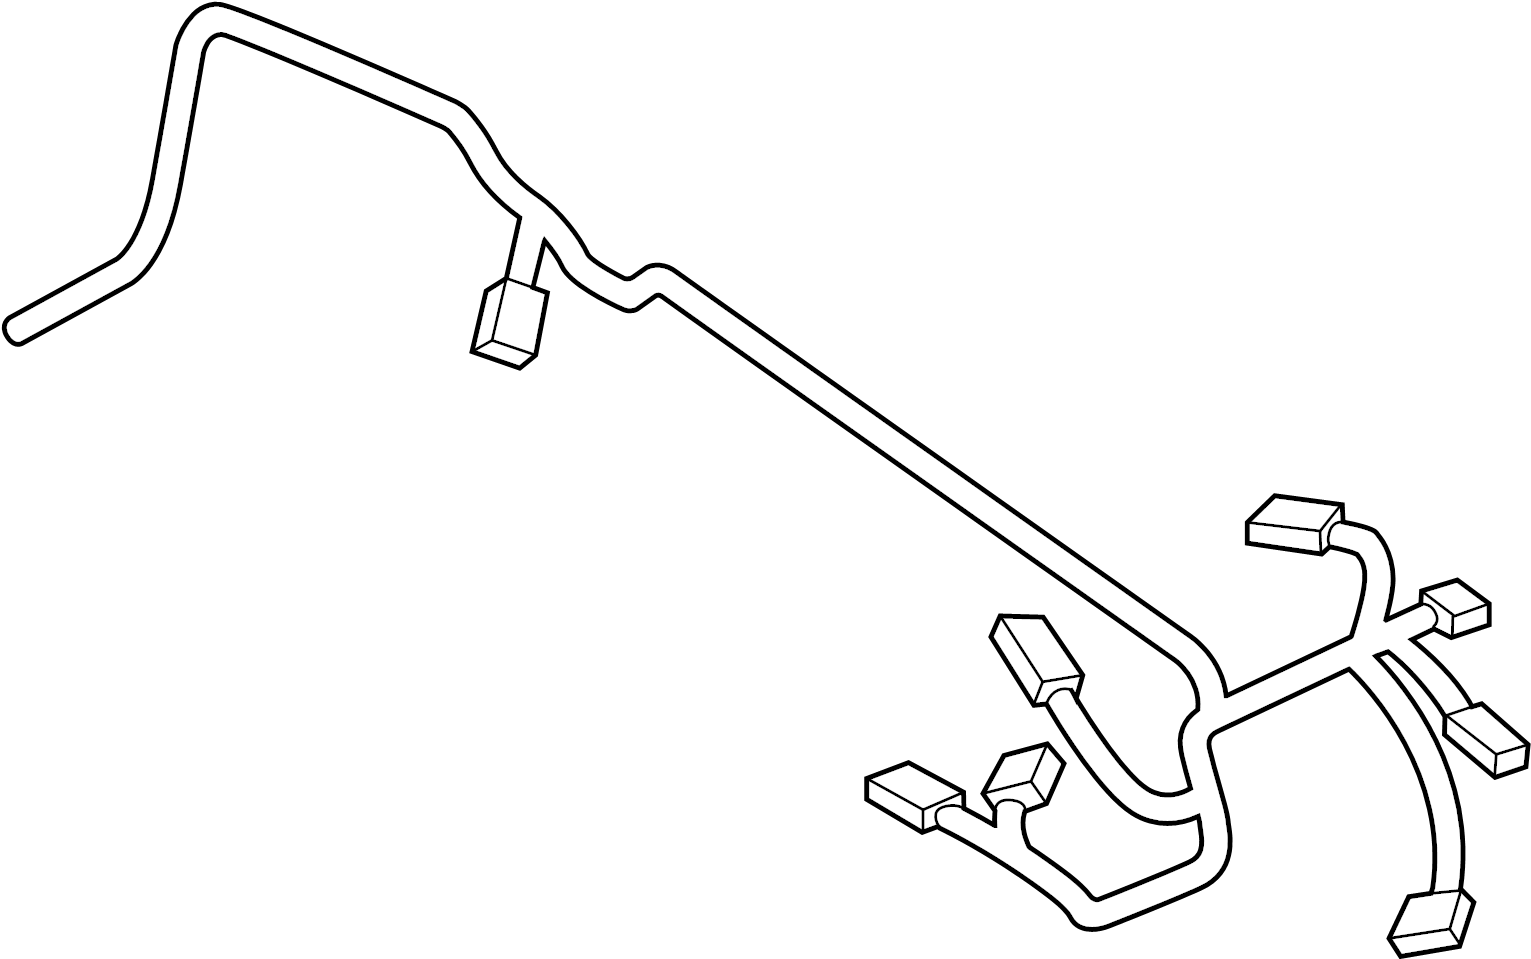 Volvo XC40 Engine Wiring Harness. Cable Harness Engine